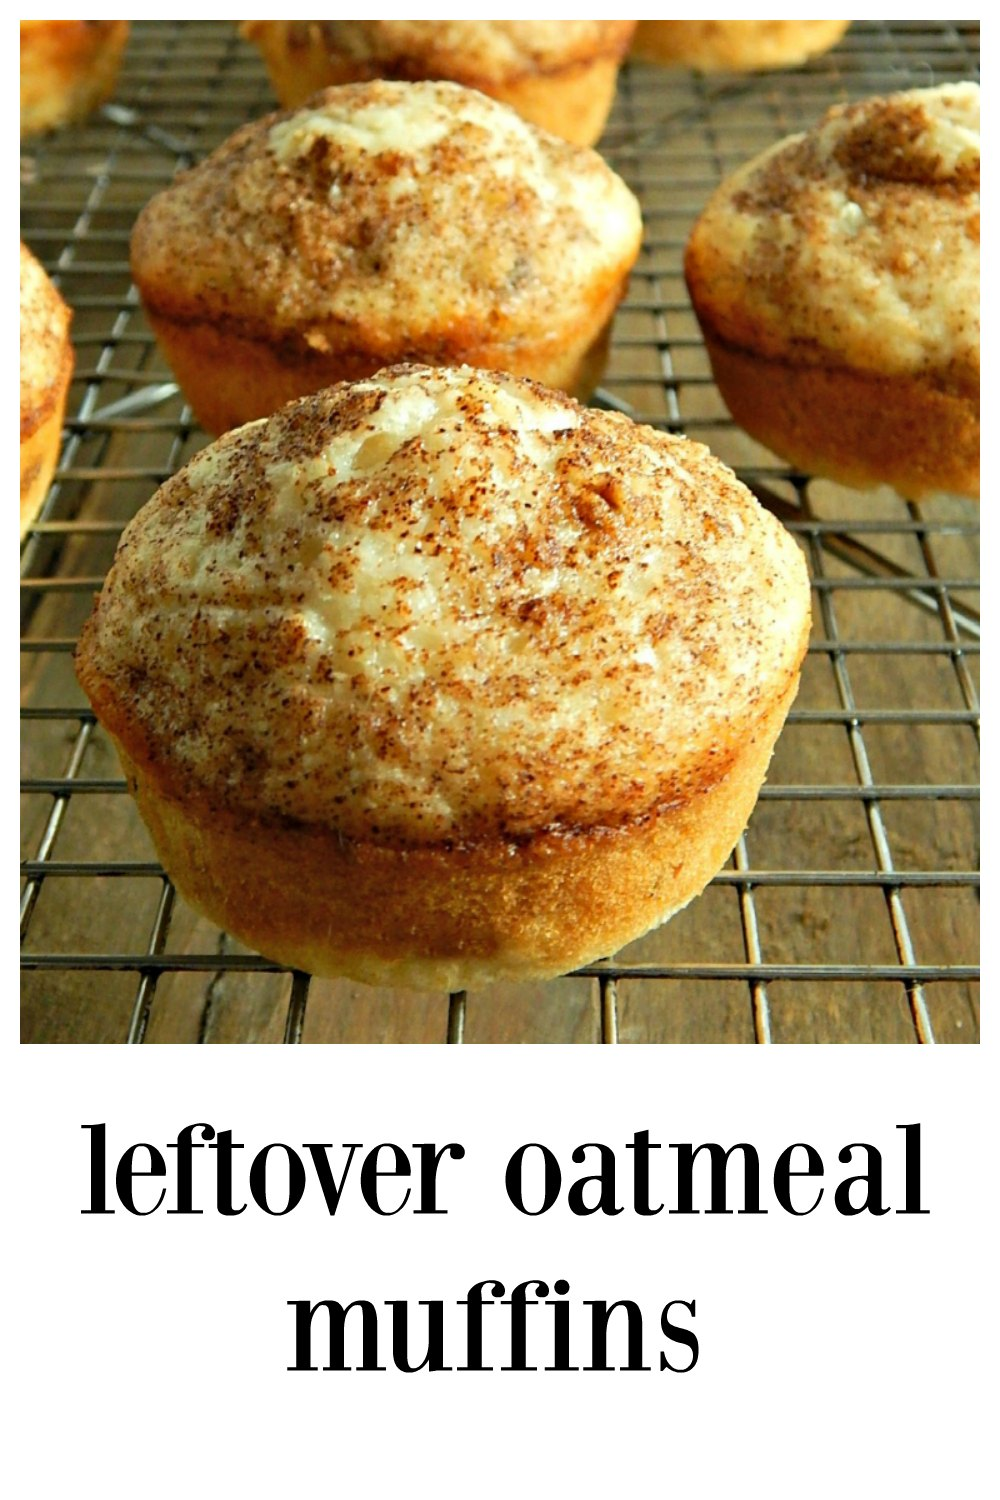 Leftover Oatmeal Muffins; a good, honest everyday muffin. Easy, fast, healthy & cheap, they're a great way to use up any cooked oatmeal. #LeftoverOatmealMuffins #OatmealMuffins